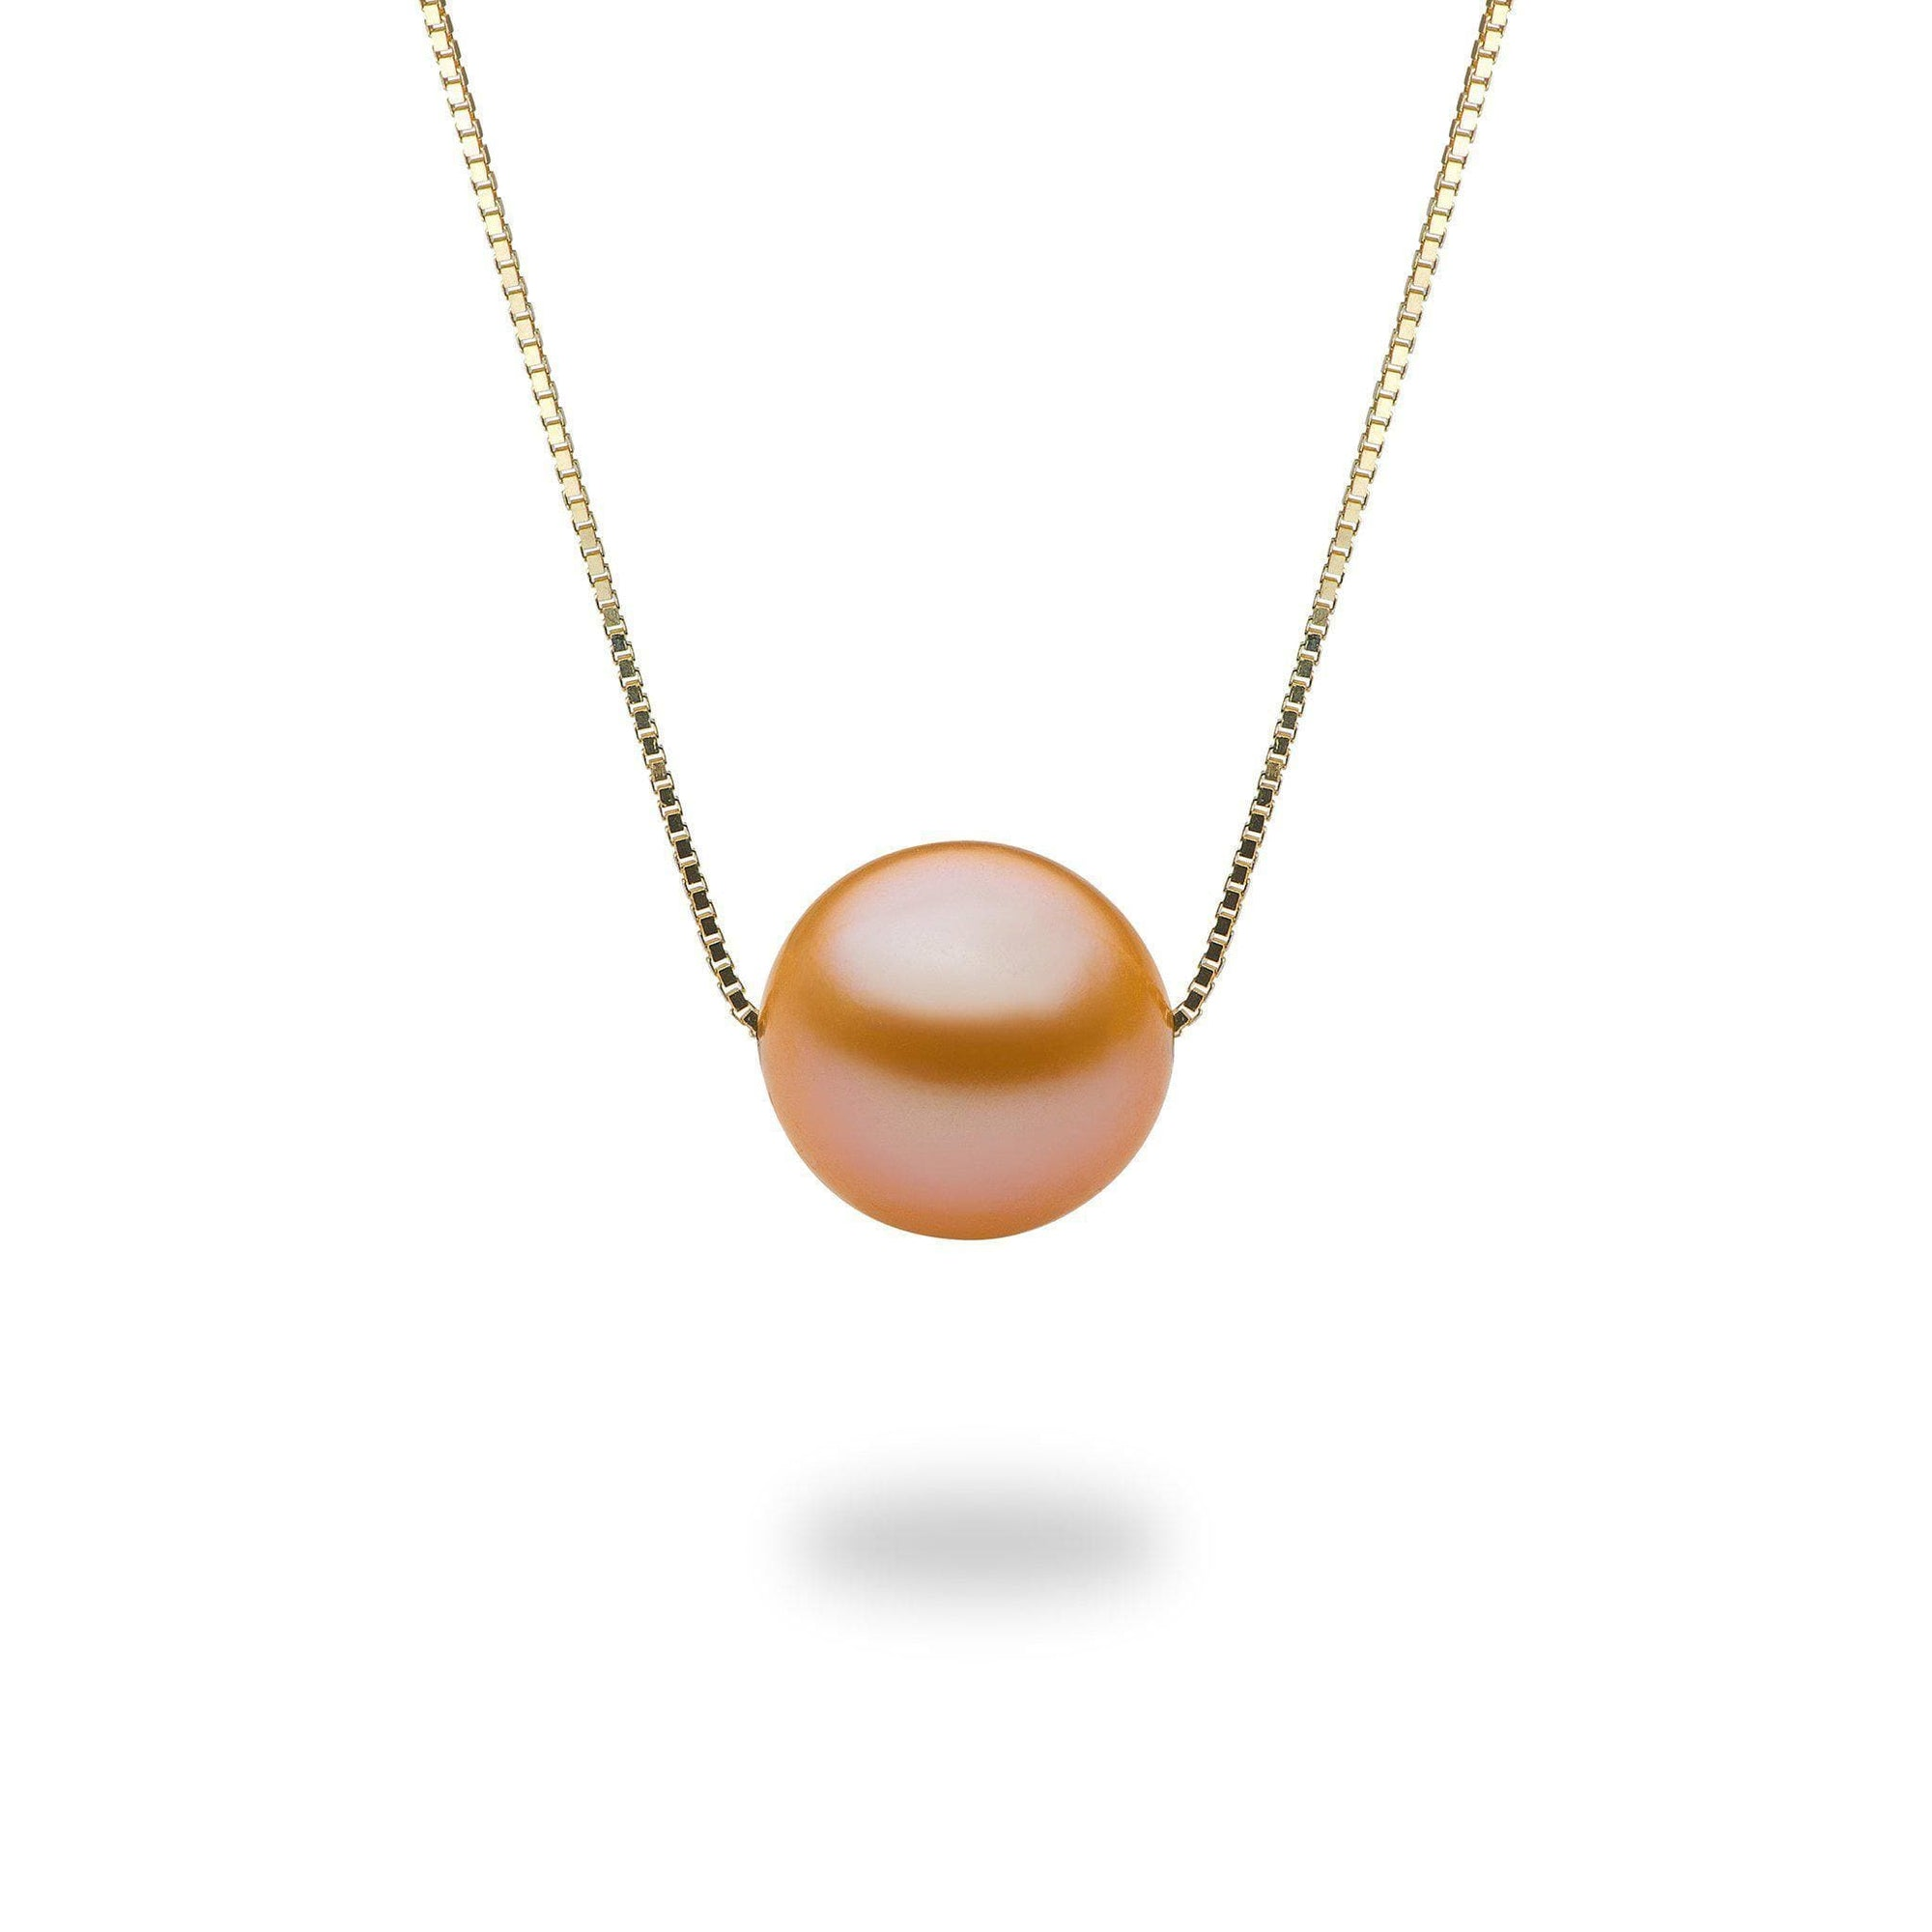 Peach Freshwater Sunset Pearl Adjustable Necklace in 14K Yellow Gold (9-10mm) - Maui Divers Jewelry